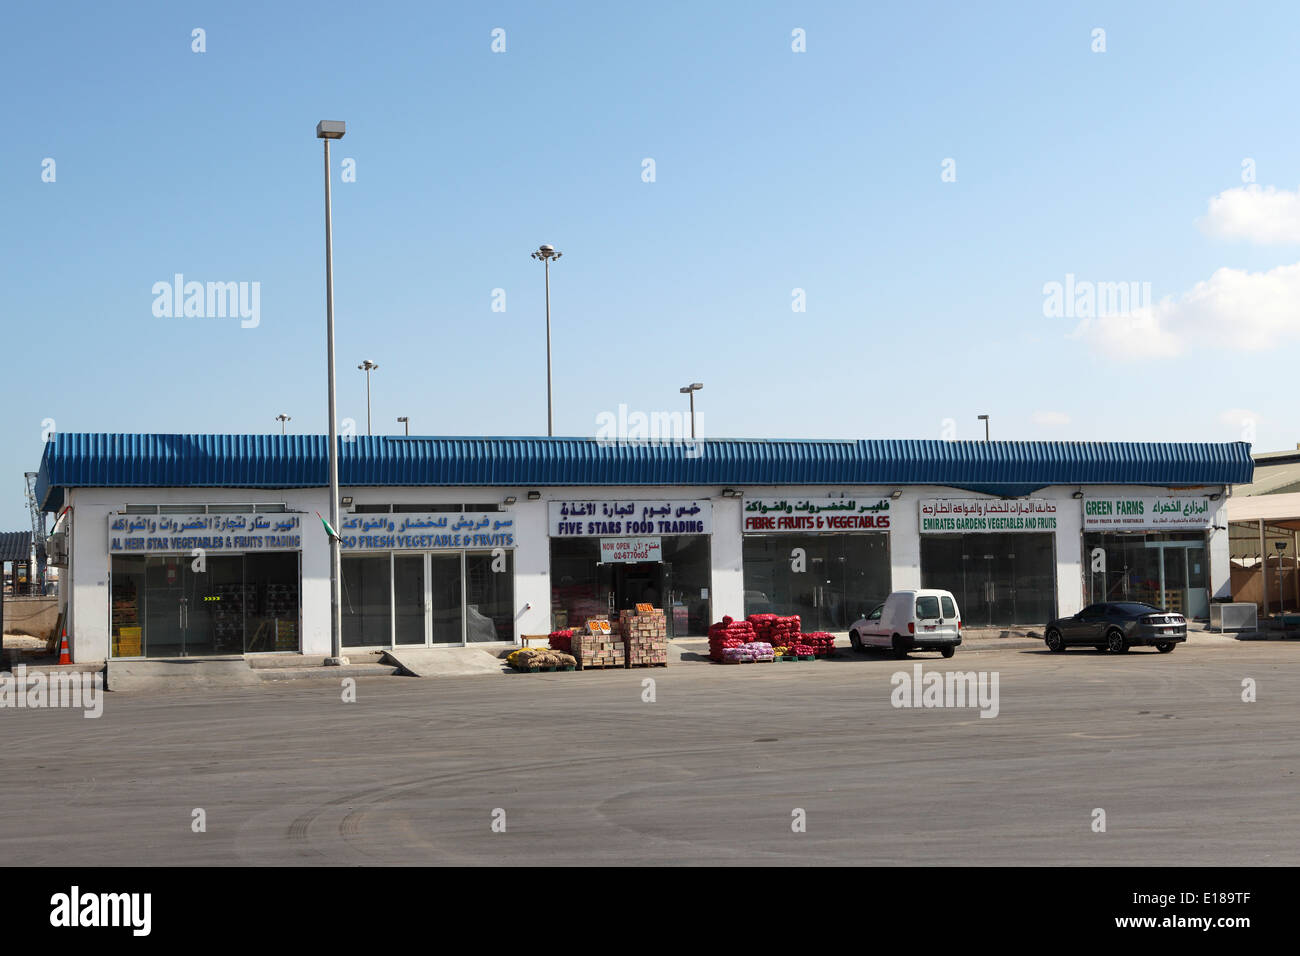 The fruit and vegetable market in Abu Dhabi Stock Photo